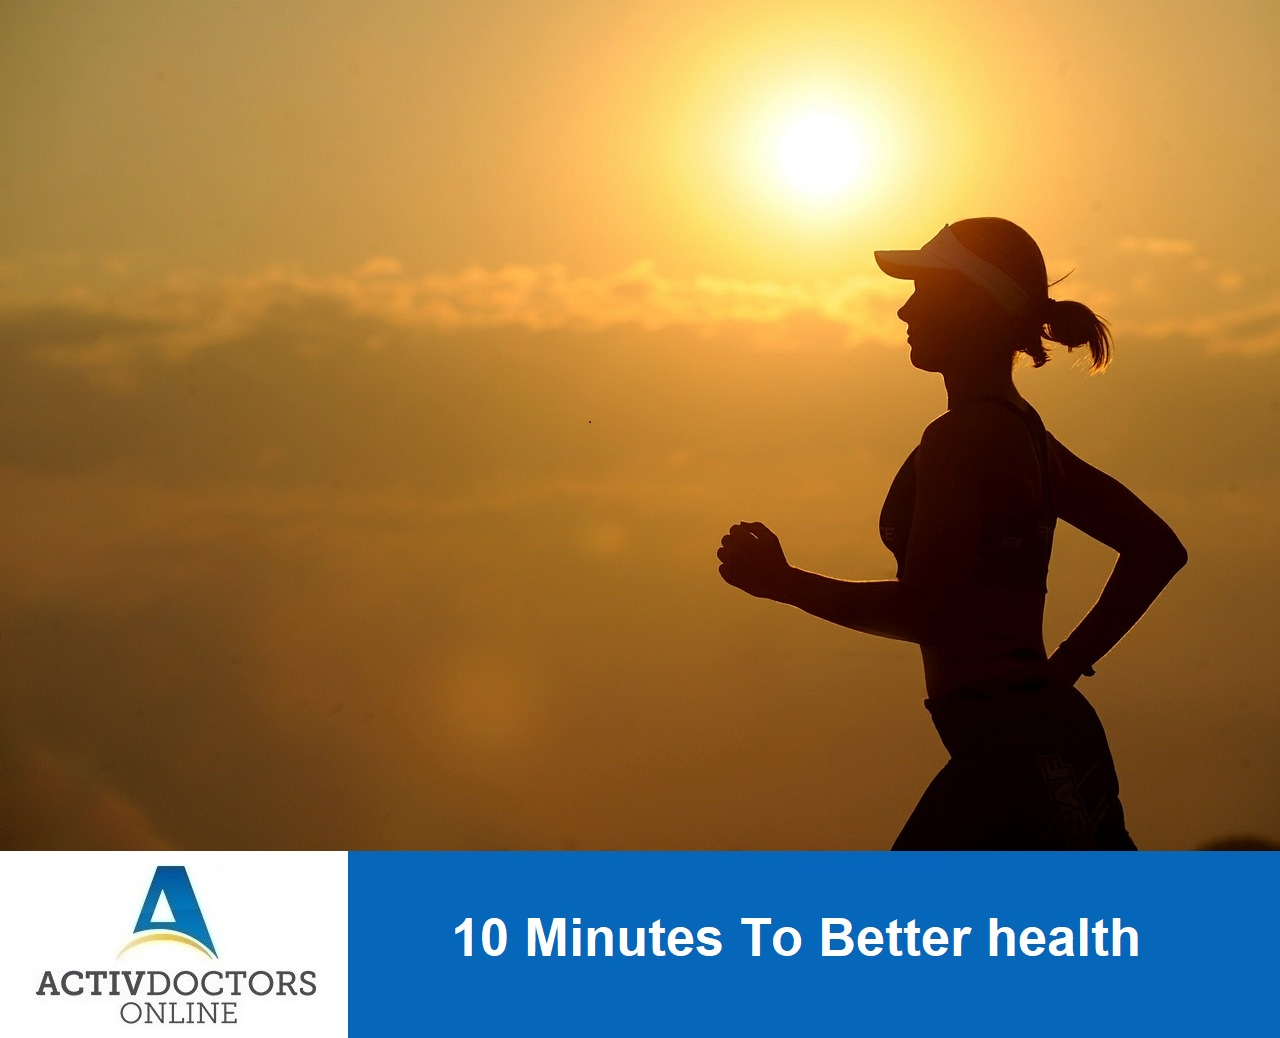 10 Minutes To Better Health